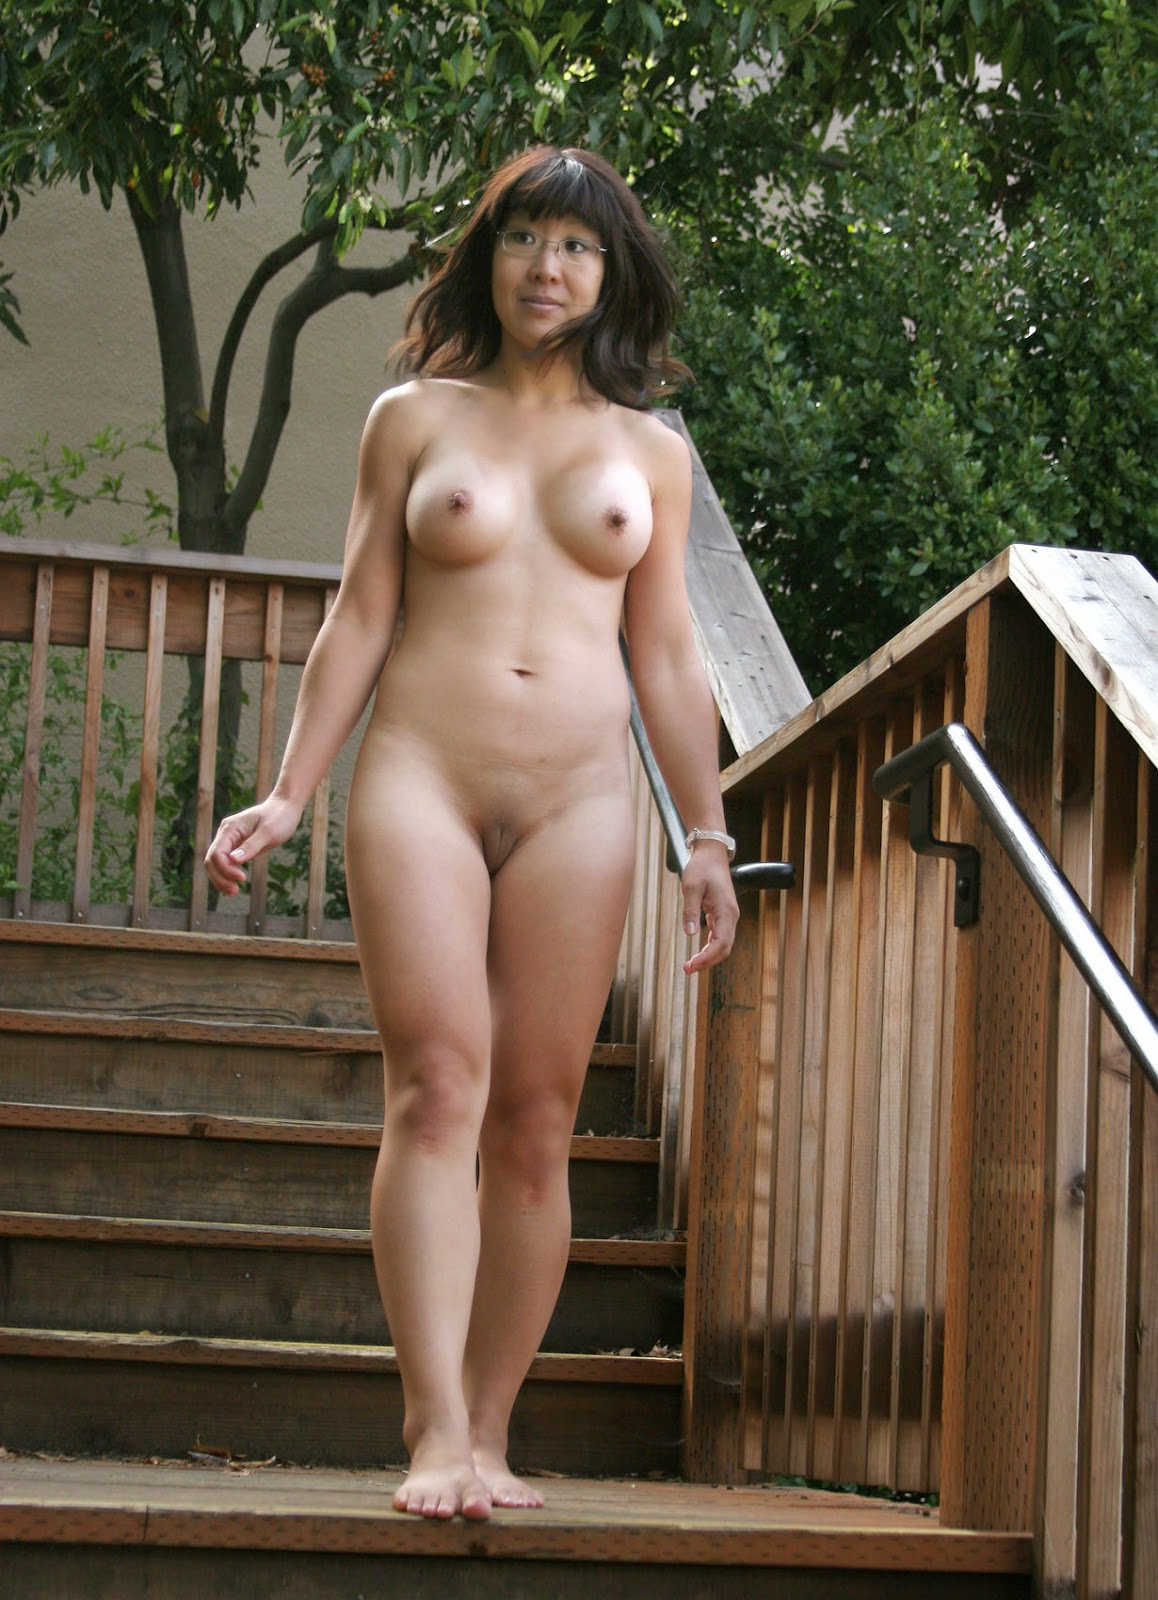 Free pics of chubby english women